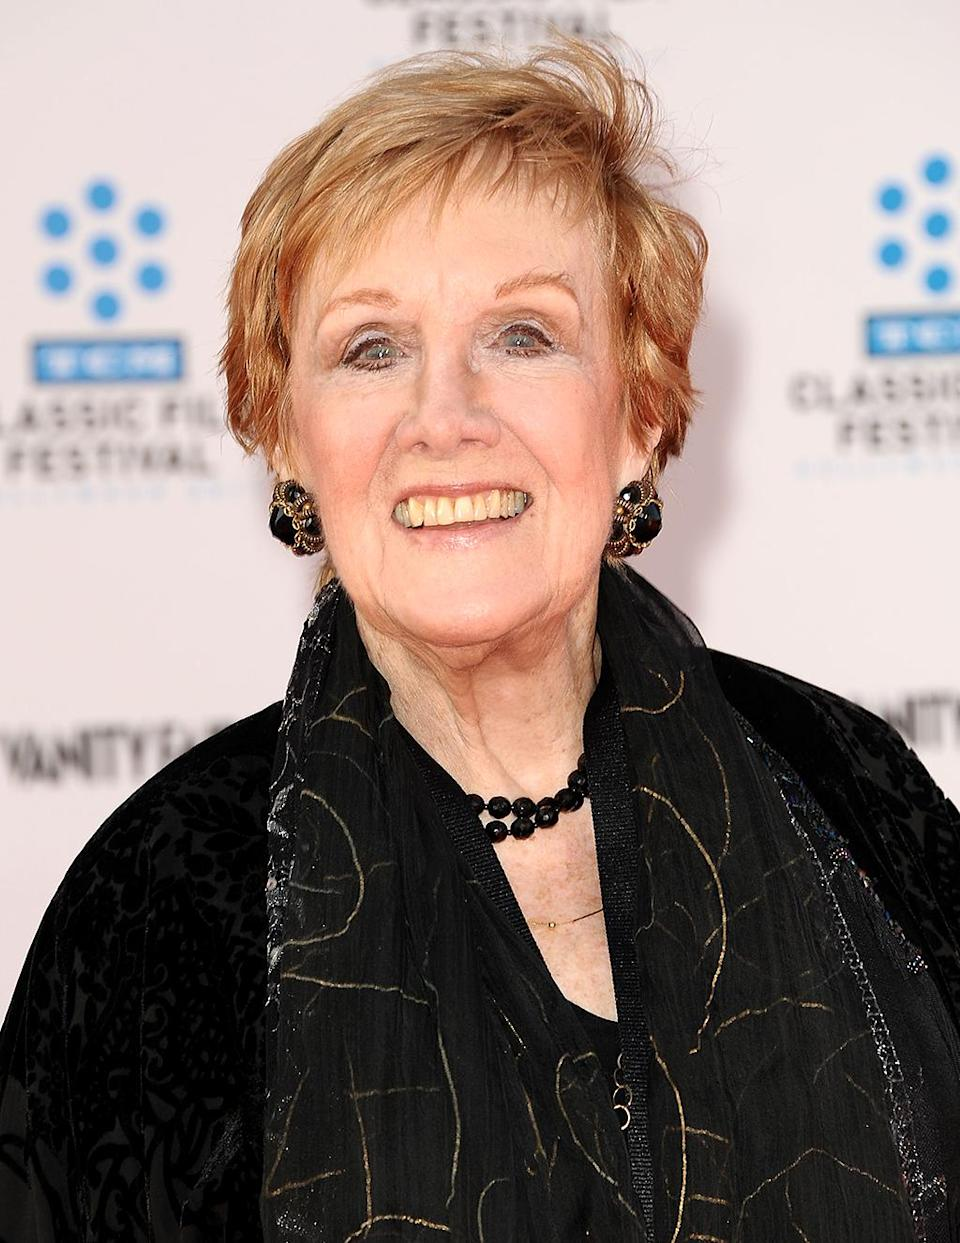 Marni Nixon was an American soprano and playback singer for featured actresses in movie musicals. She was best known for dubbing the singing voices of the leading actresses in films, including The King and I, West Side Story, and My Fair Lady. On July 24, she died after a long, off-and-on battle with breast cancer, which she had survived in 1985 and 2000. She was 86. (Photo: Getty Images)